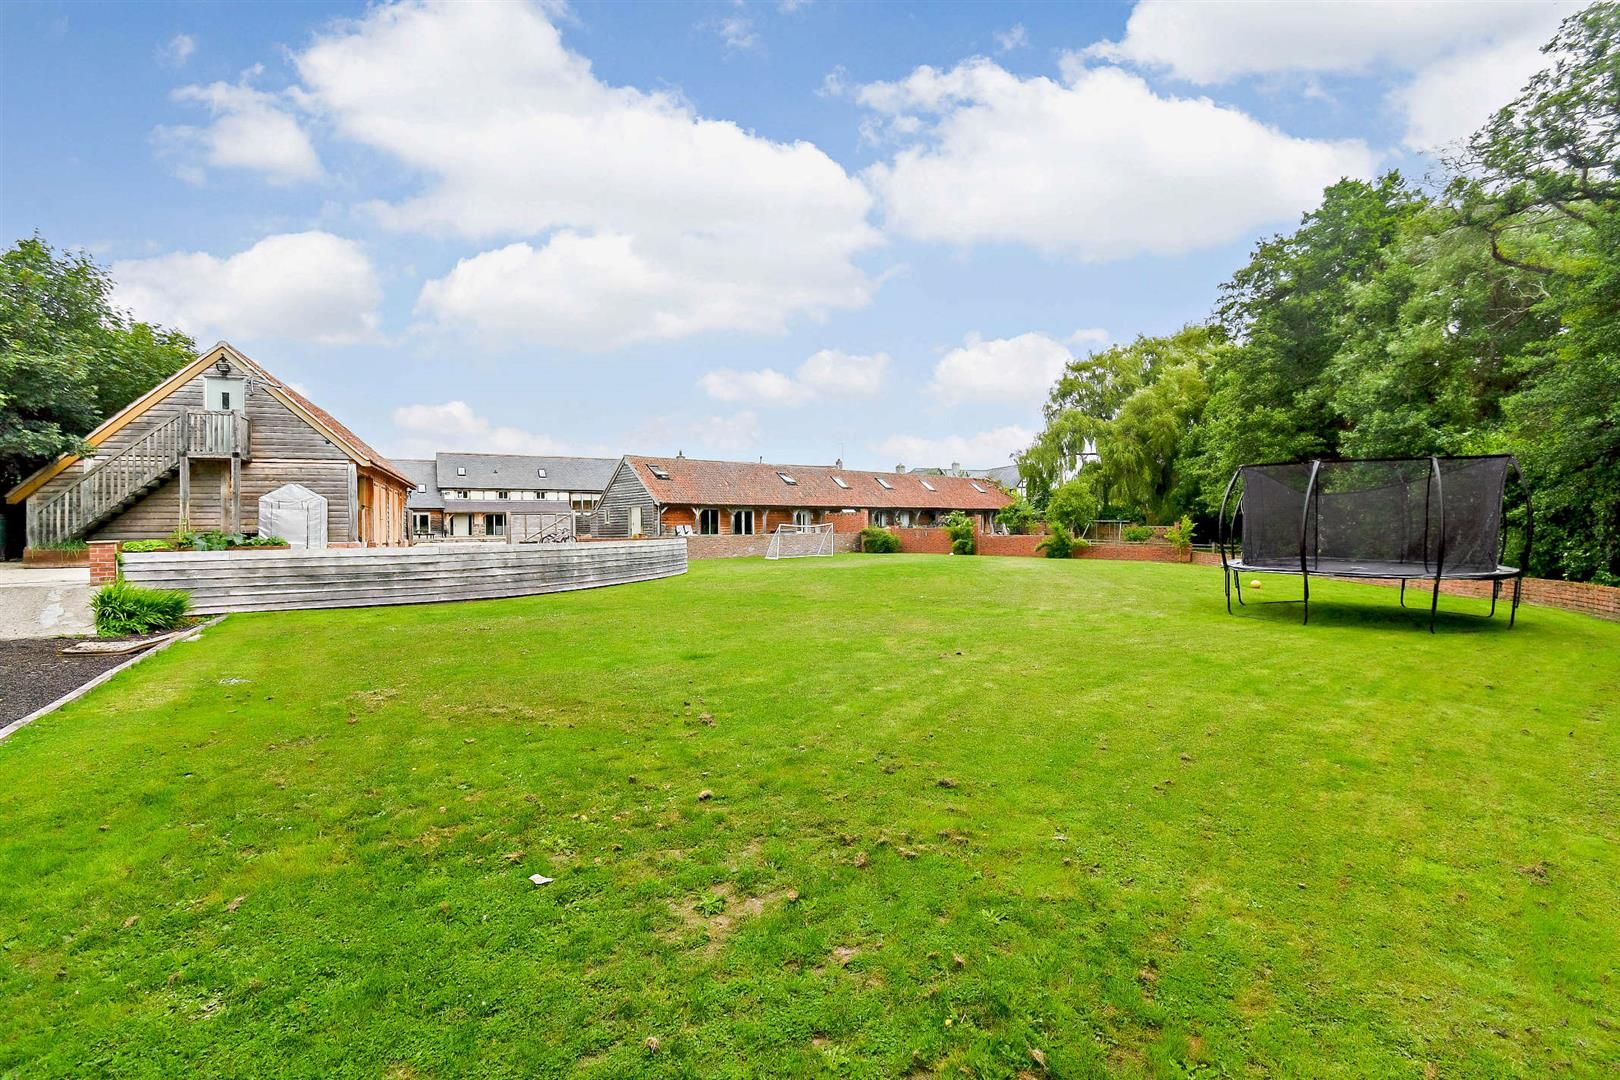 5 bed link detached house for sale in Winforton, HR3